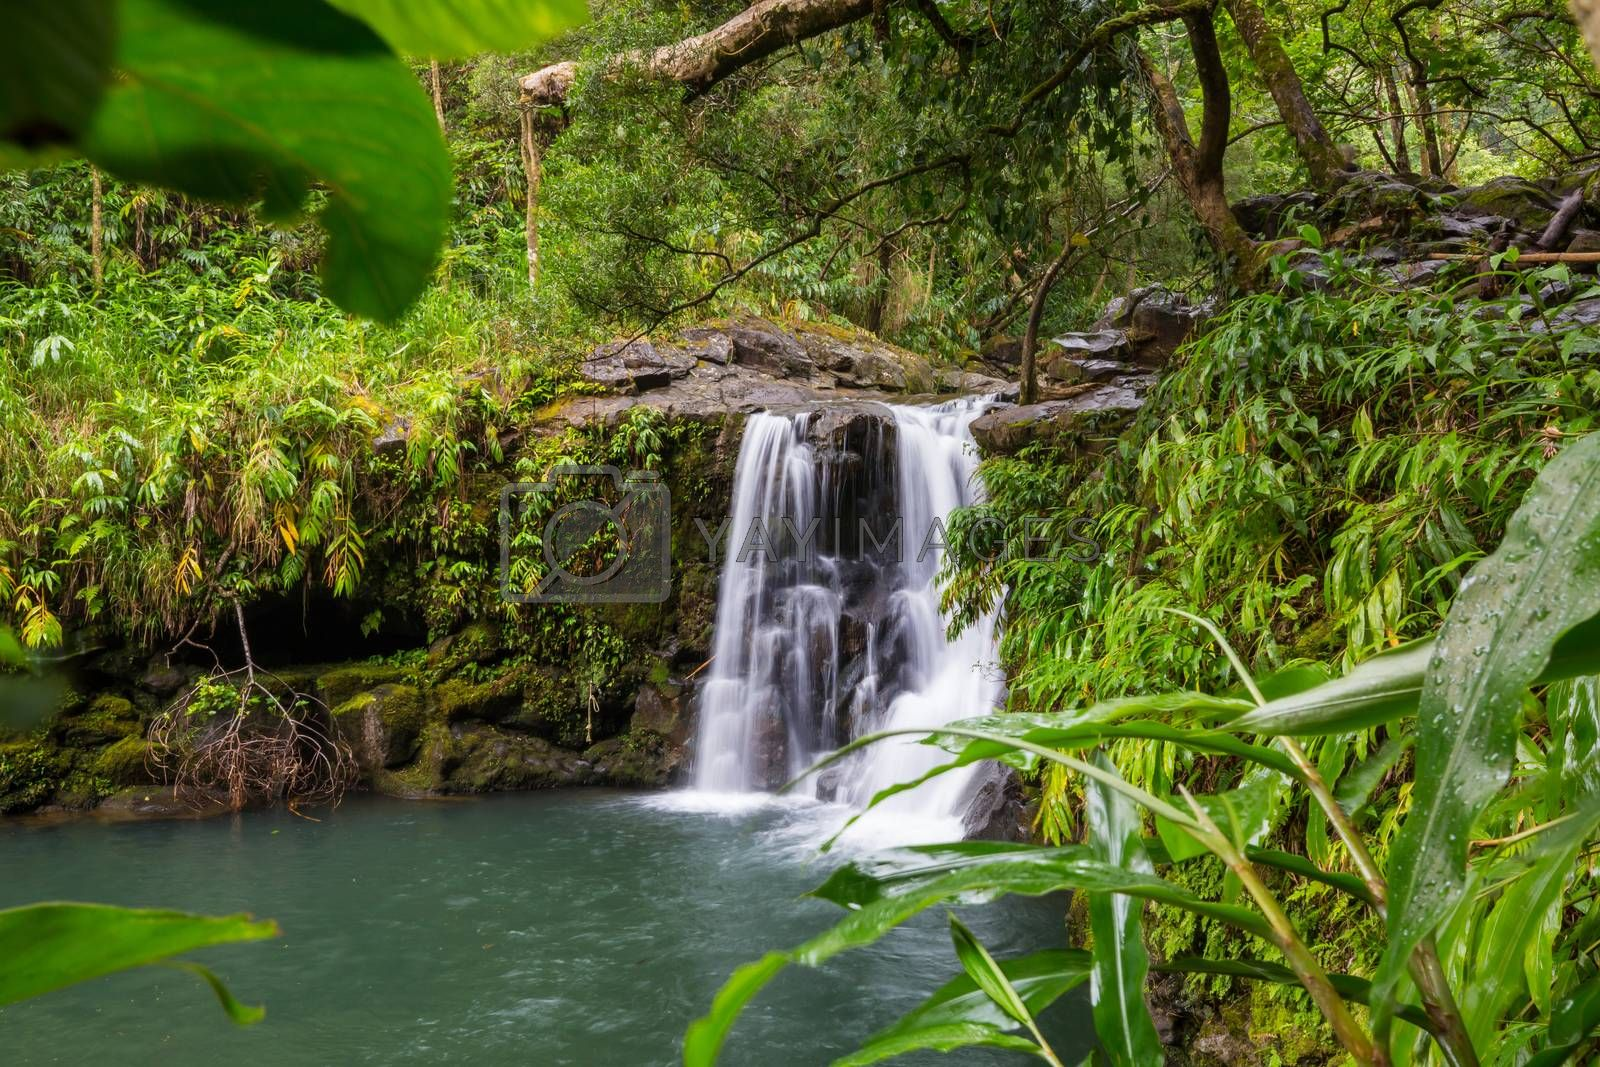 Beautiful waterfall in tropical rainforest in Hawaii island, USA